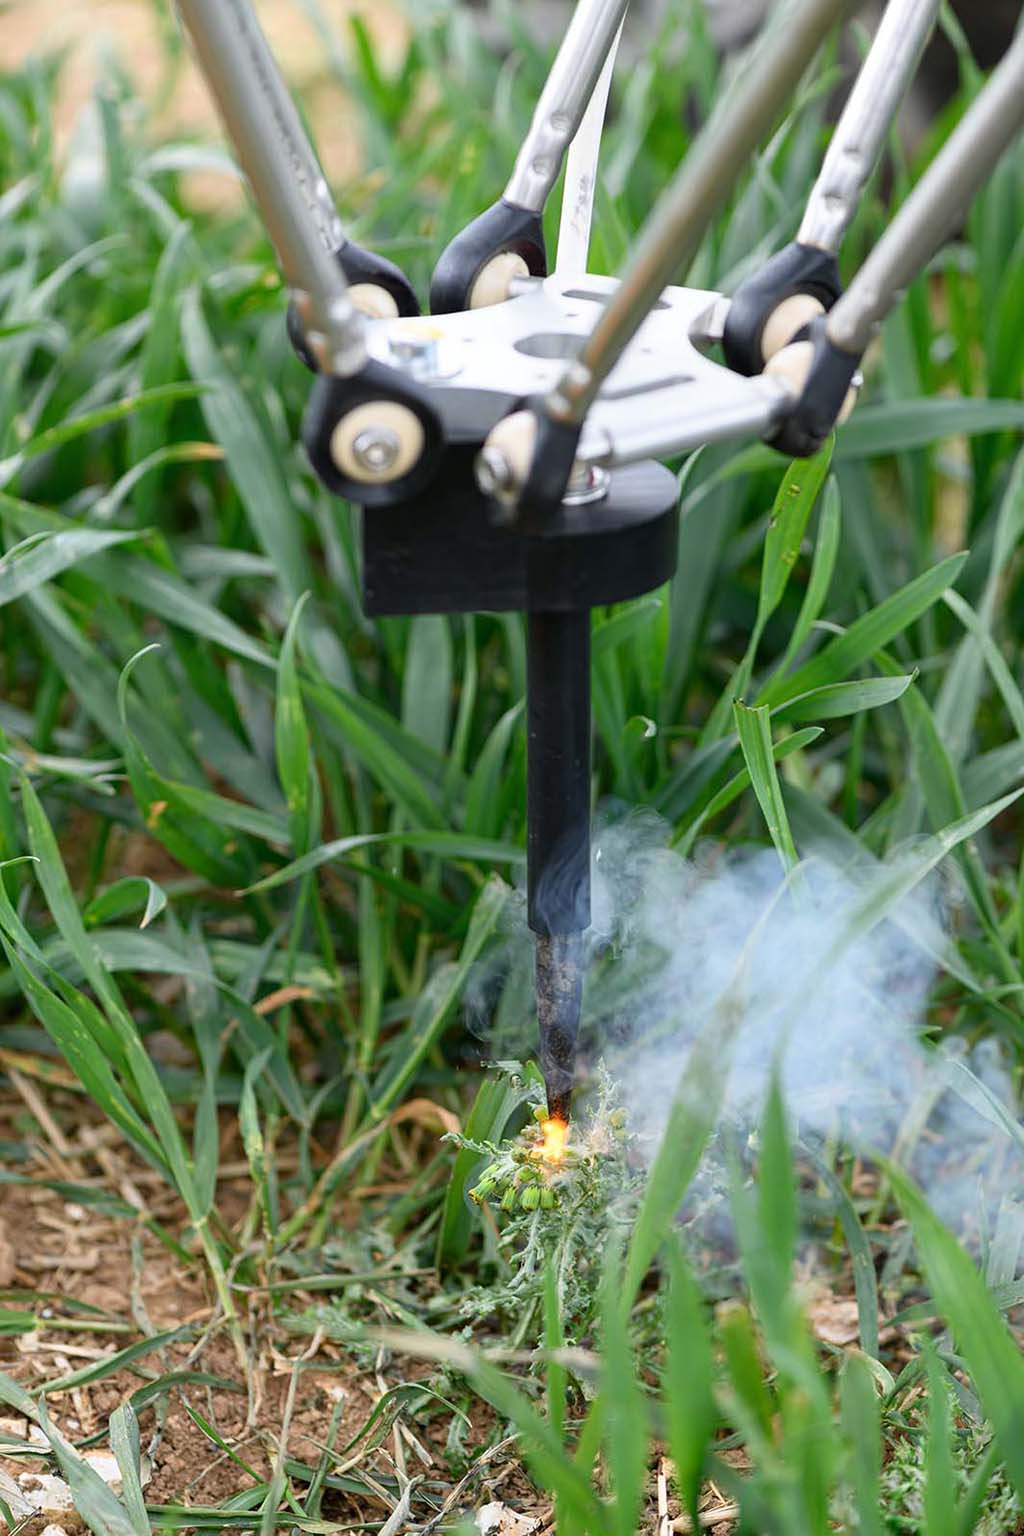 Probes direct an electrical current into the weed which travels down to the root and effectively 'cooks' it, leaving the weed to die off.